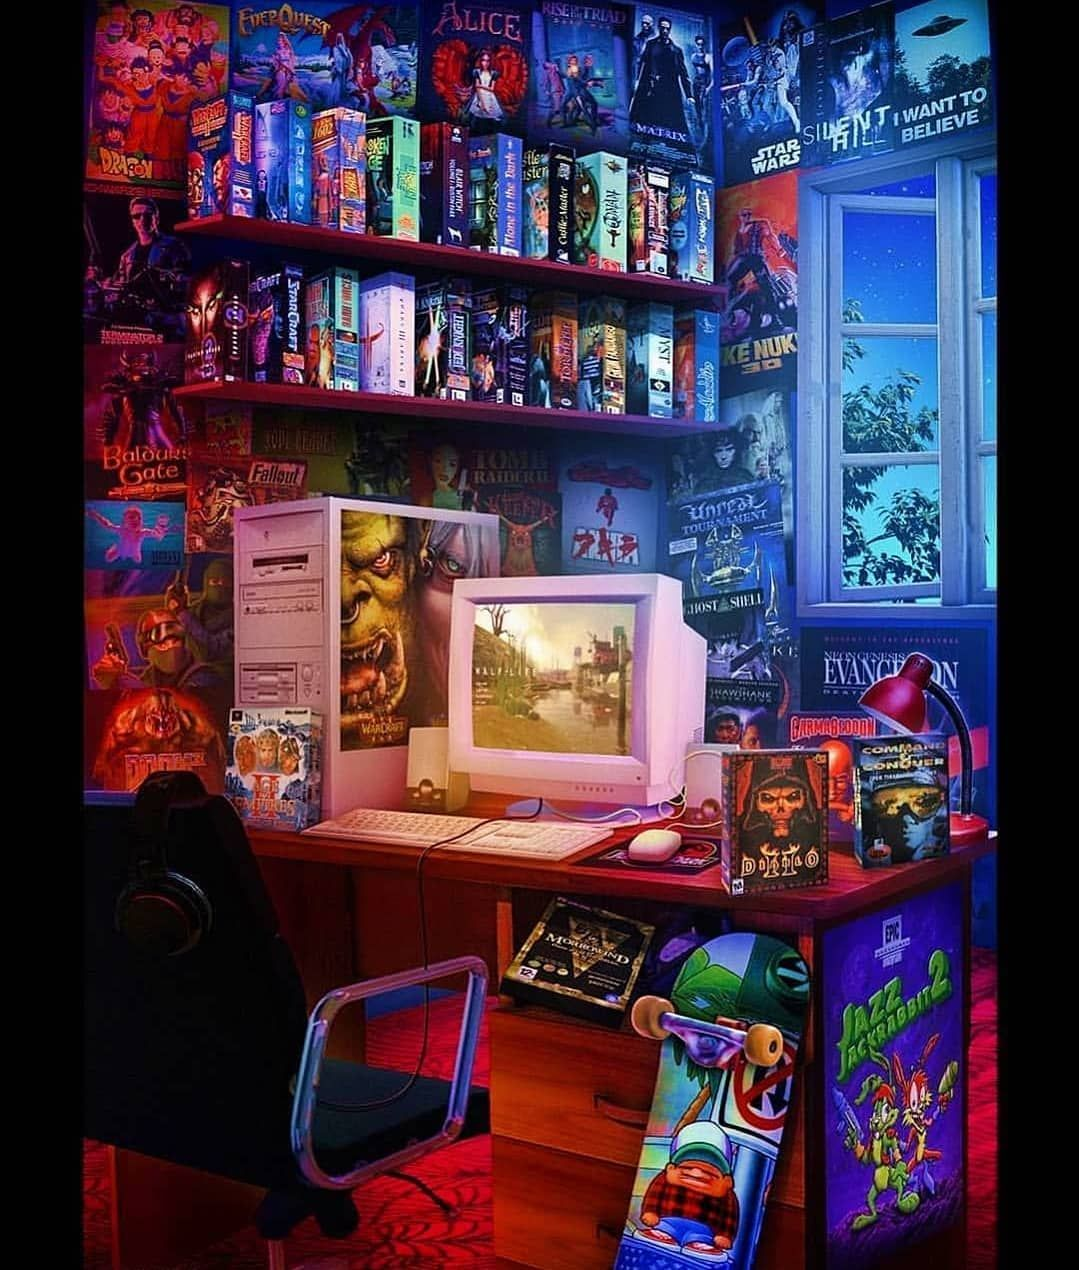 Amazing 90 S Setup Concept Art Gamer Pcgaming Gamingpc